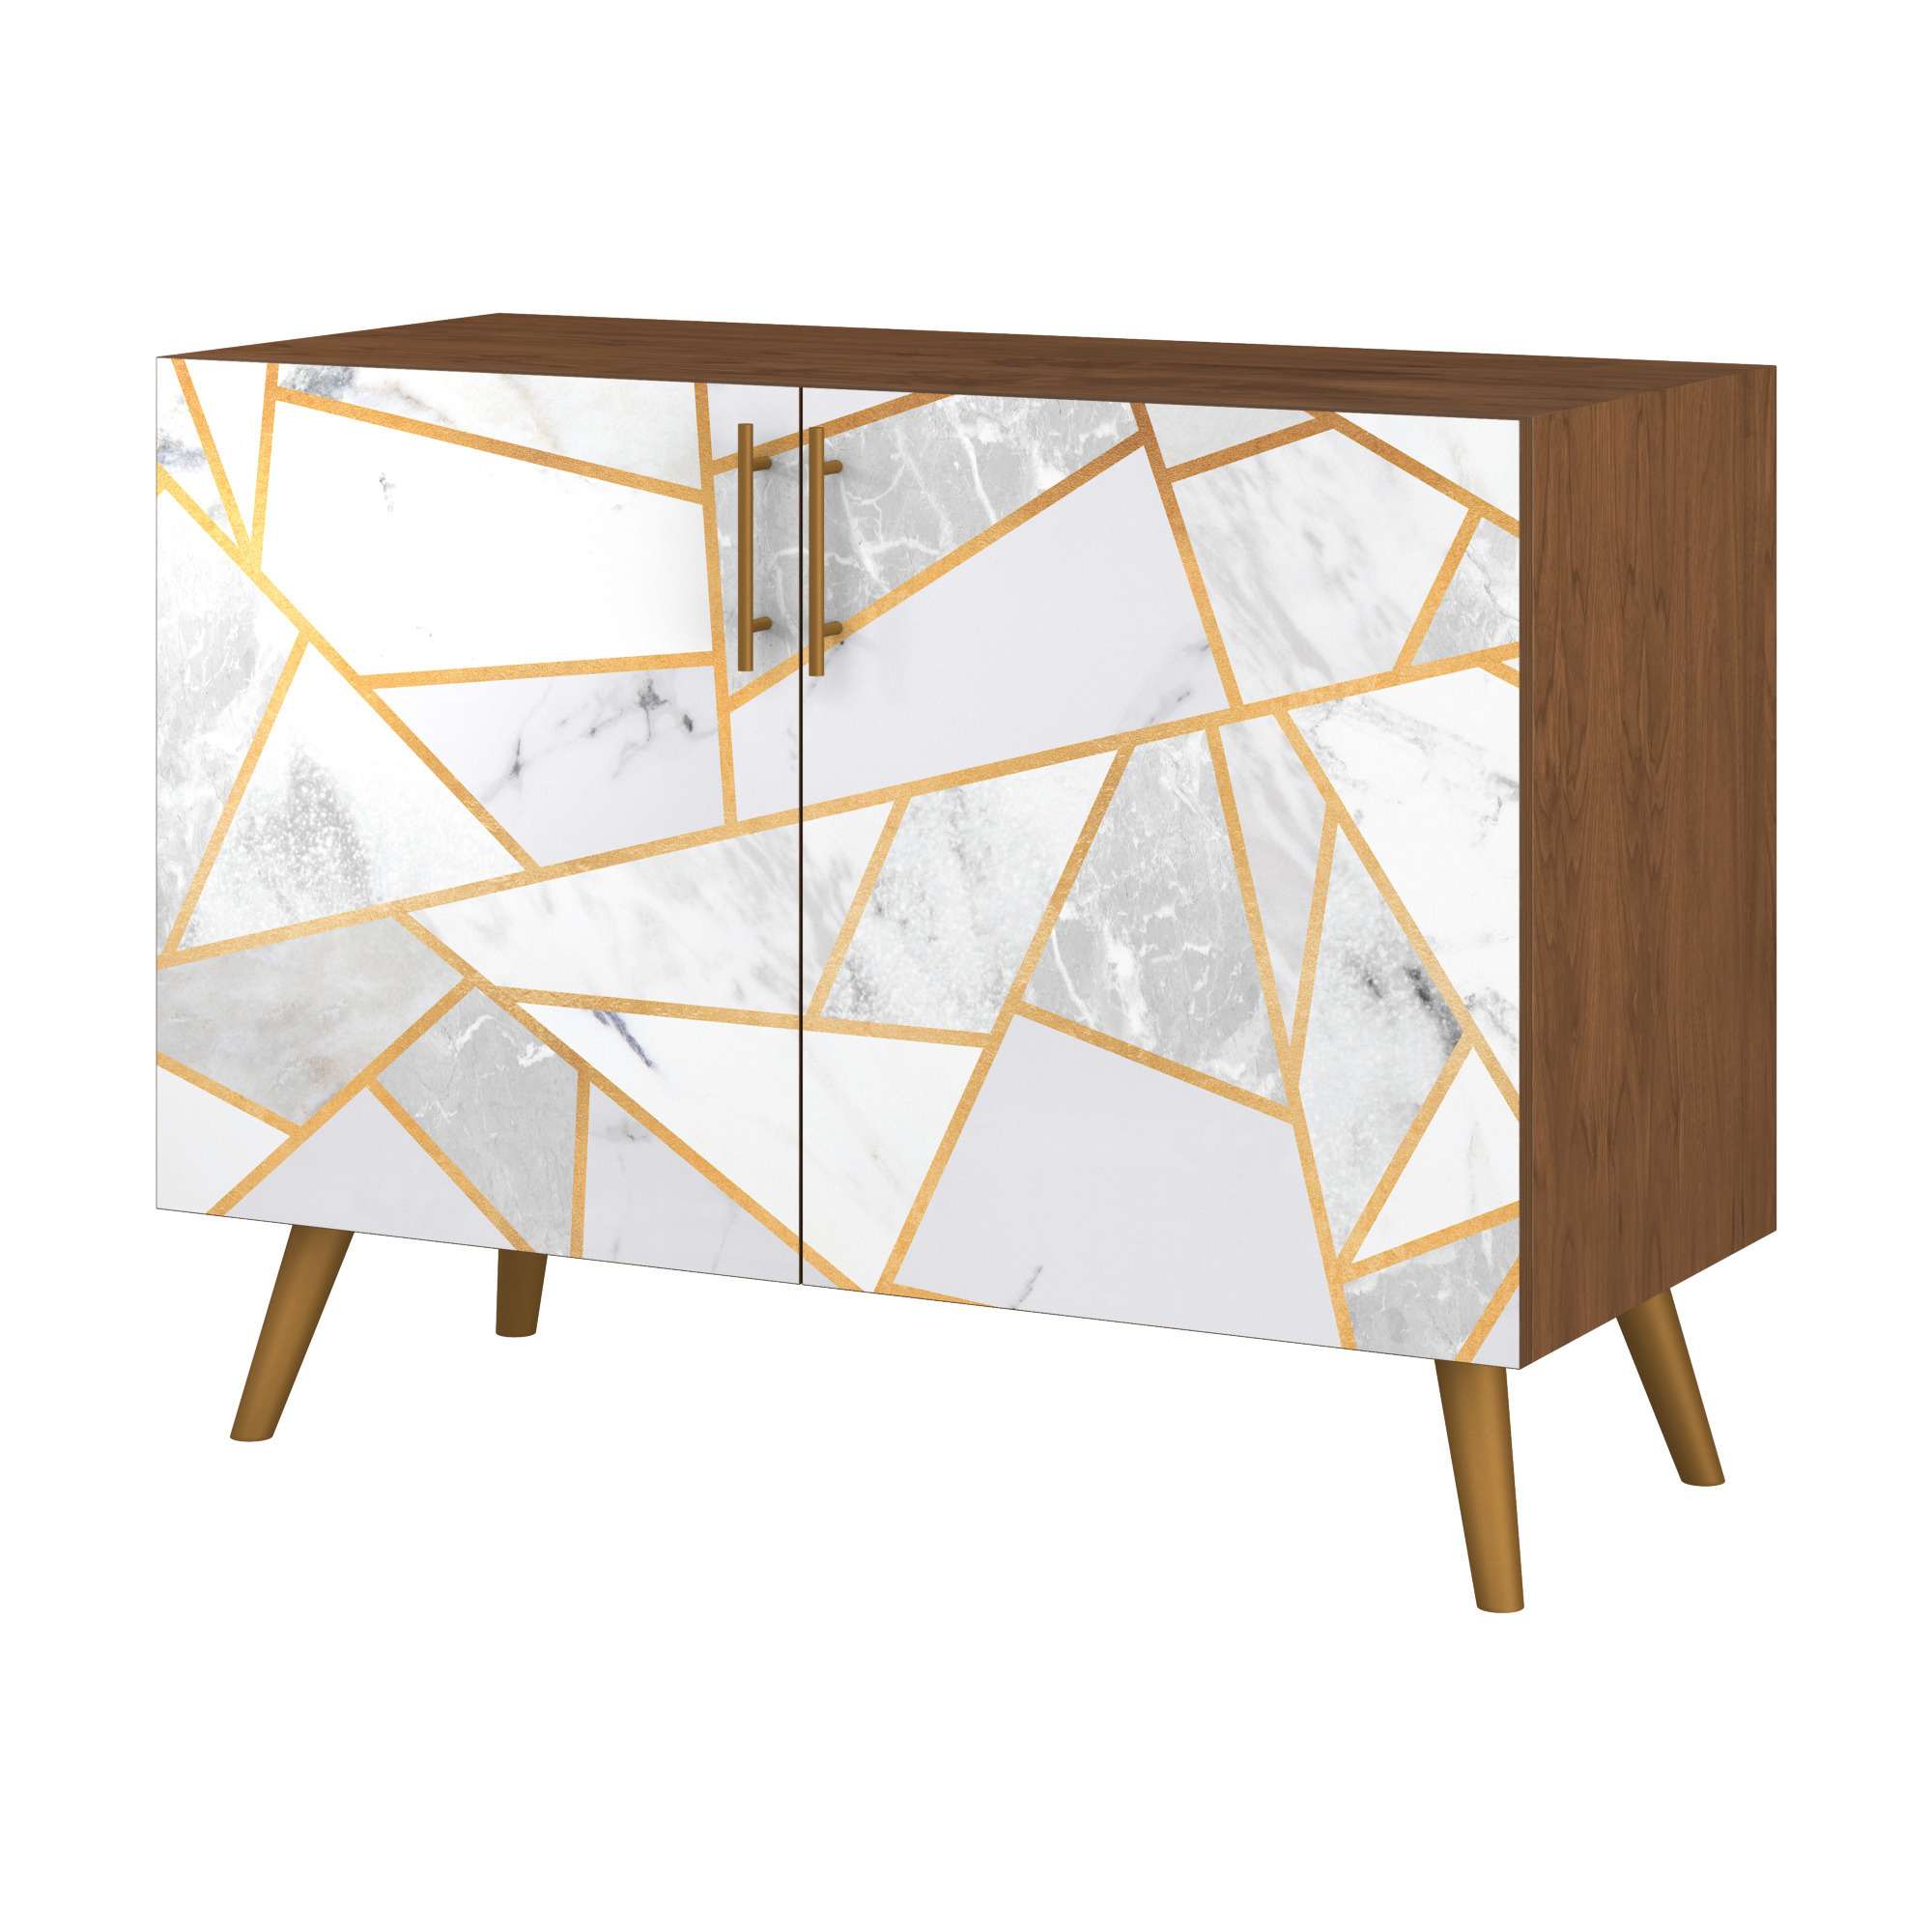 Customize Credenzas   Snugsquare Within Bright Angles Credenzas (View 9 of 20)